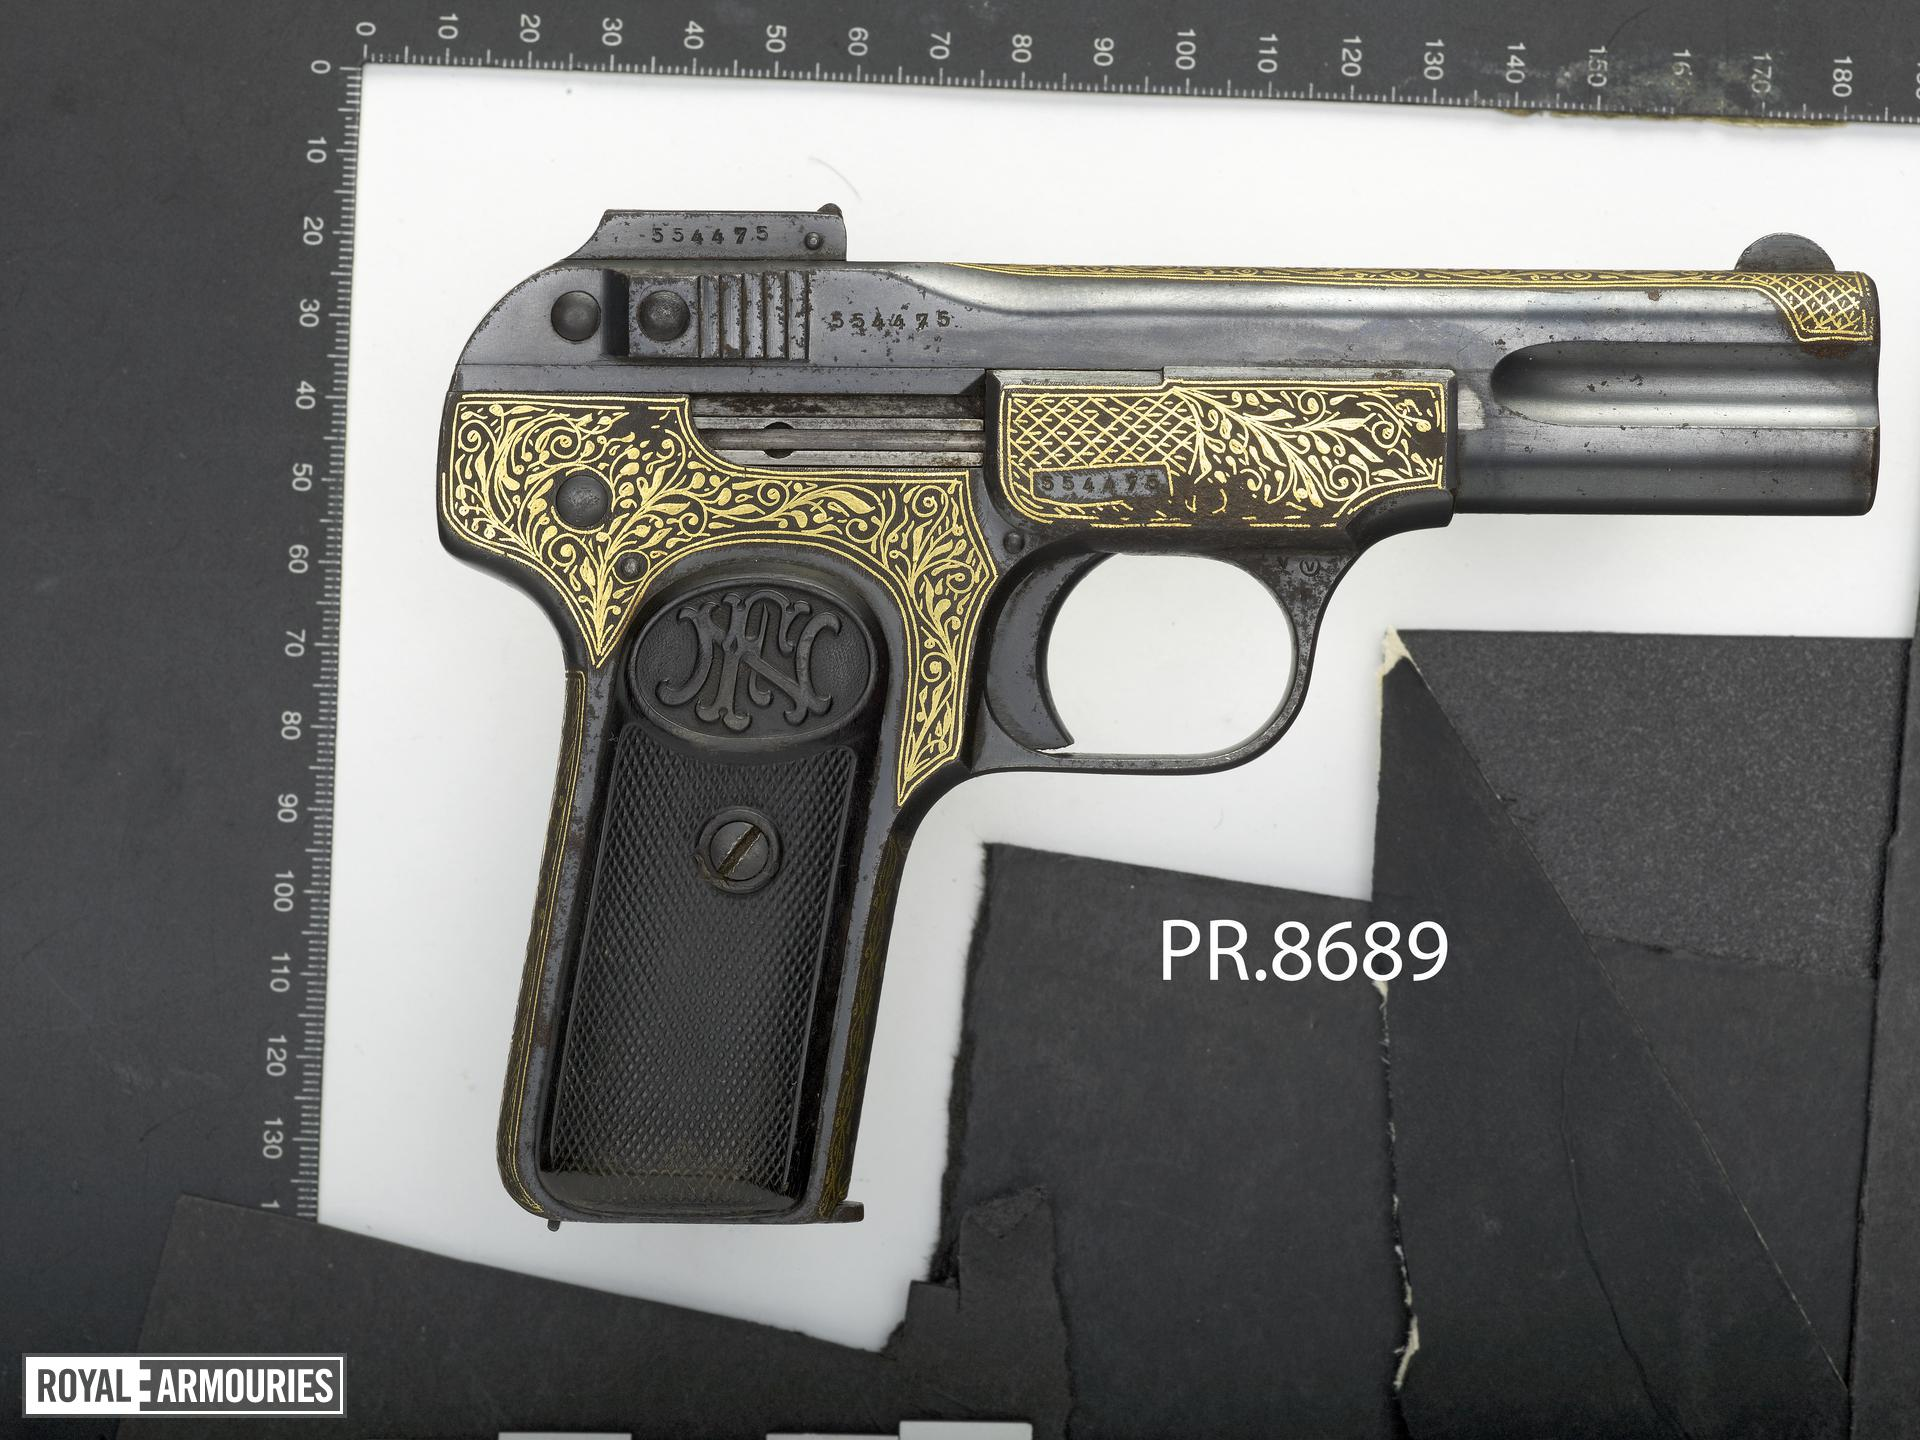 Centrefire self-loading pistol - FN Browning Model 1900 Inlaid in gold